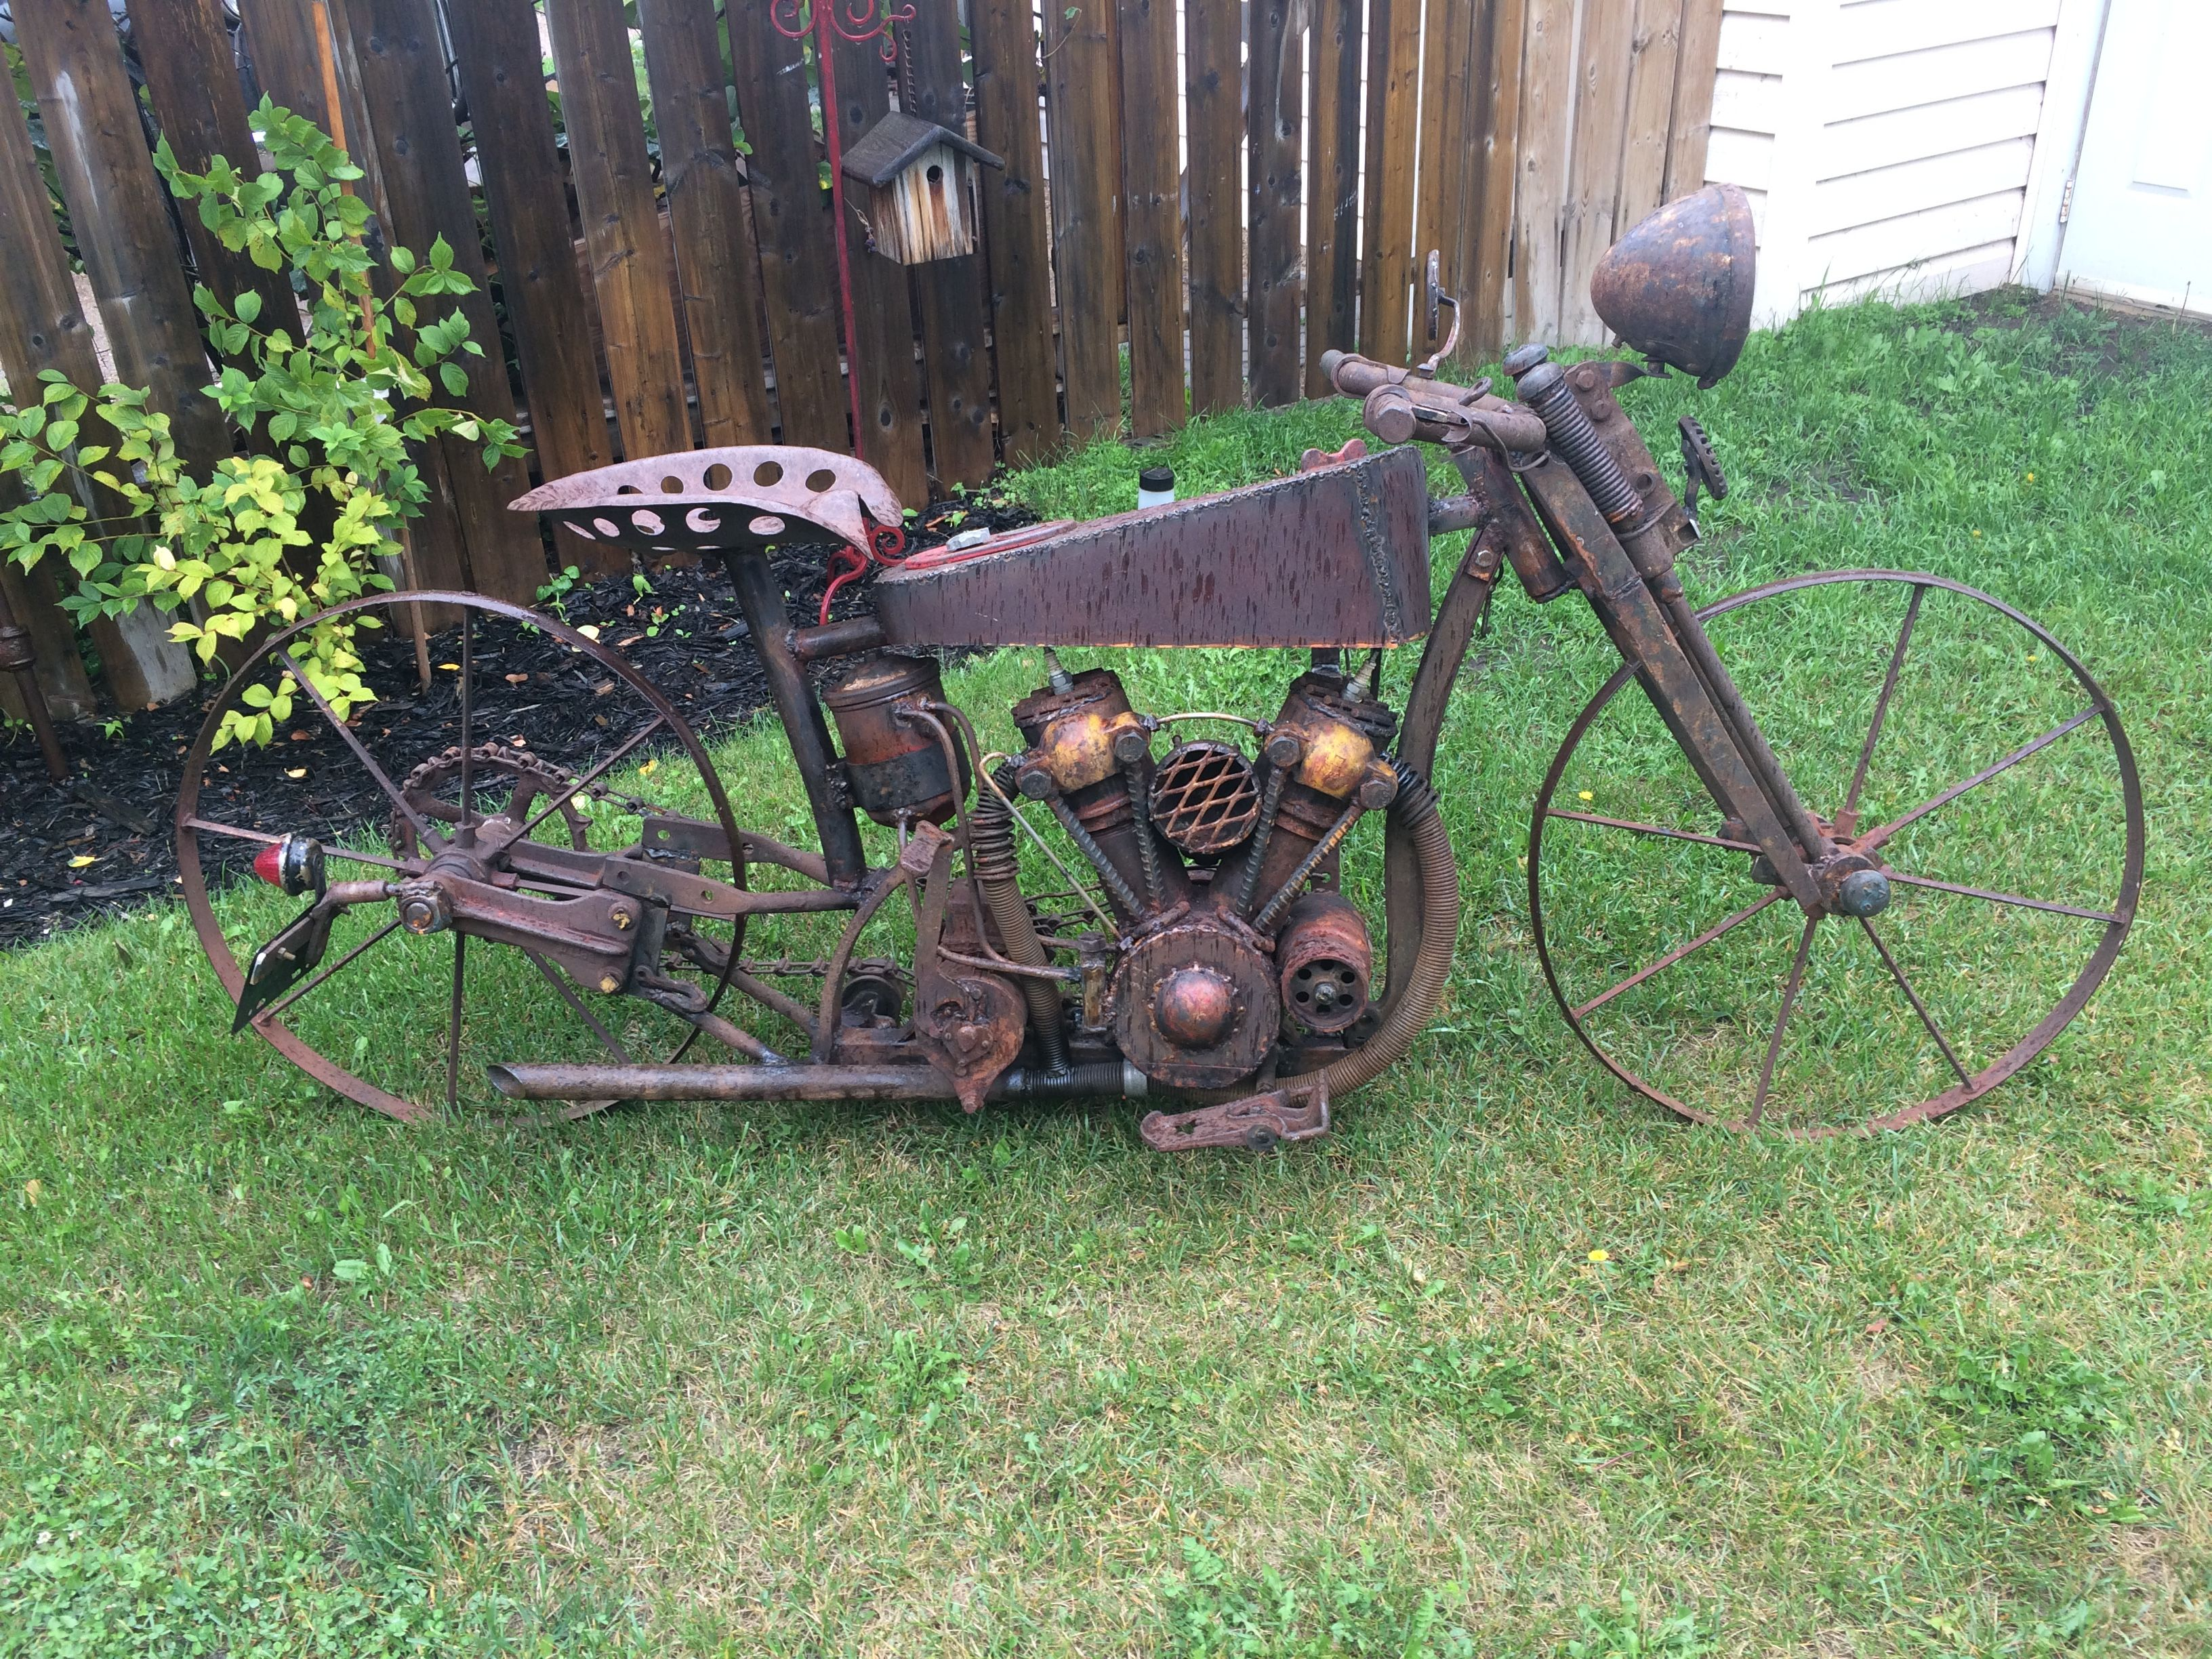 Scrap Metal Art Motorcycle By Doug Smith Junk Metal Art